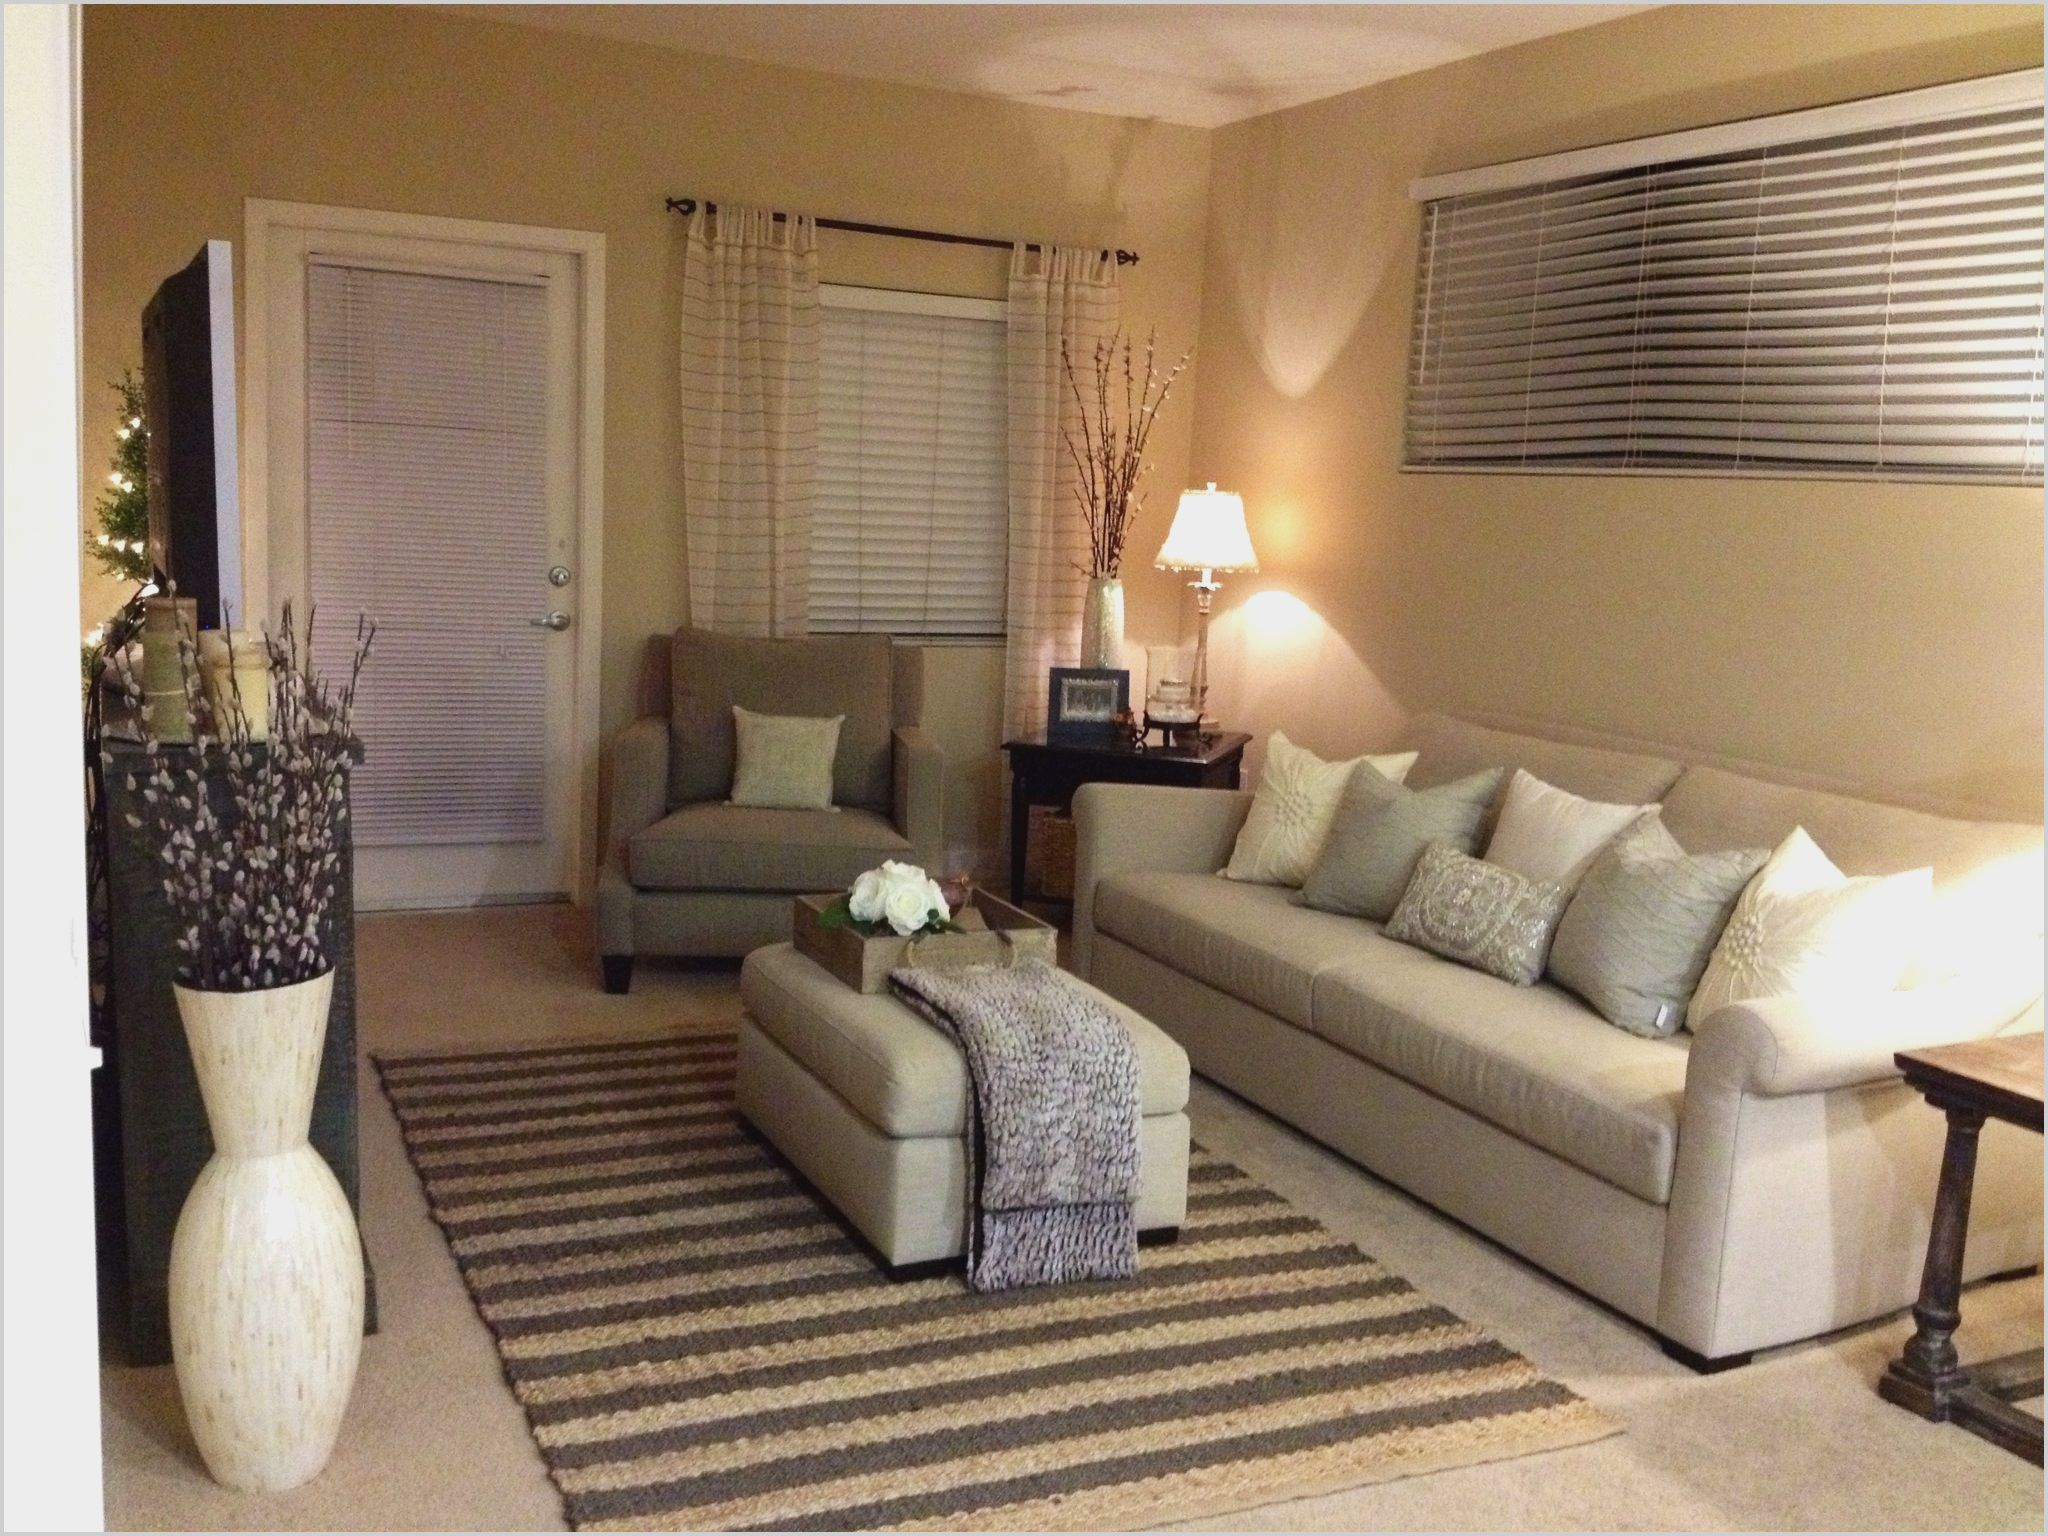 Decorating Ideas For A Rectangular Living Room In